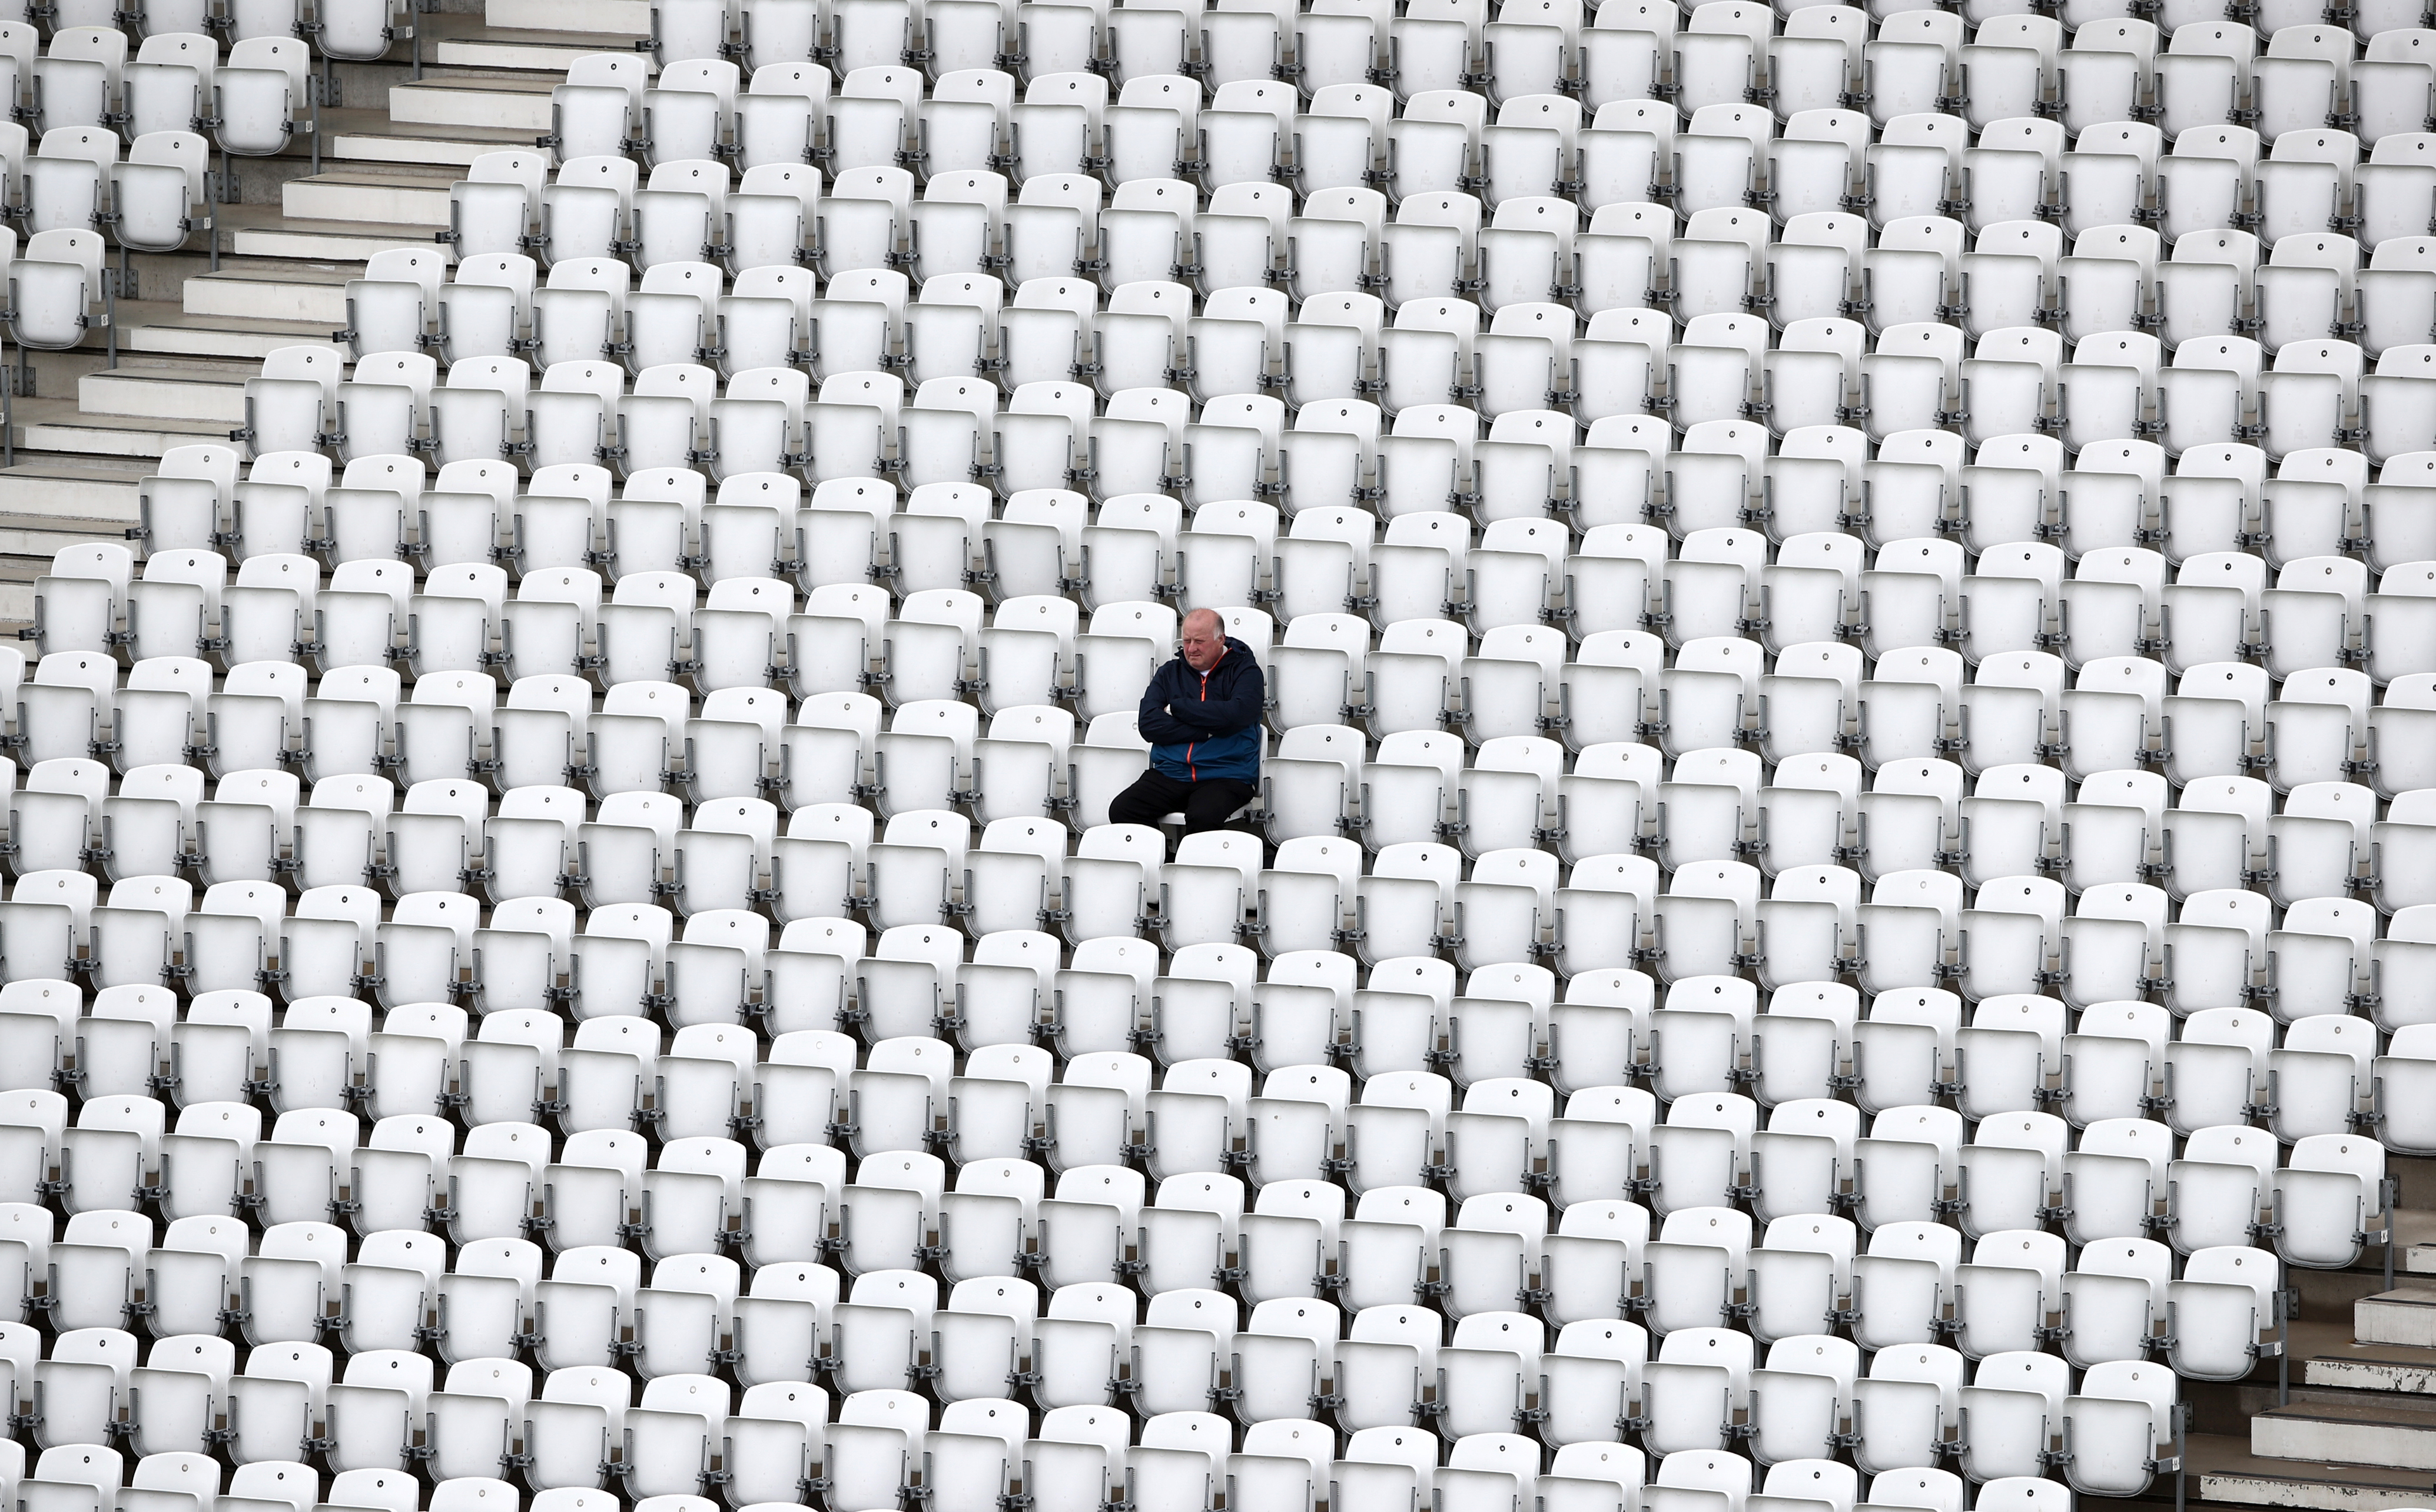 <p>A spectator waits in the stands as rain delays play during day two of the LV= Insurance County Championship match at Trent Bridge, Nottingham. Picture date: Friday May 21, 2021.</p>